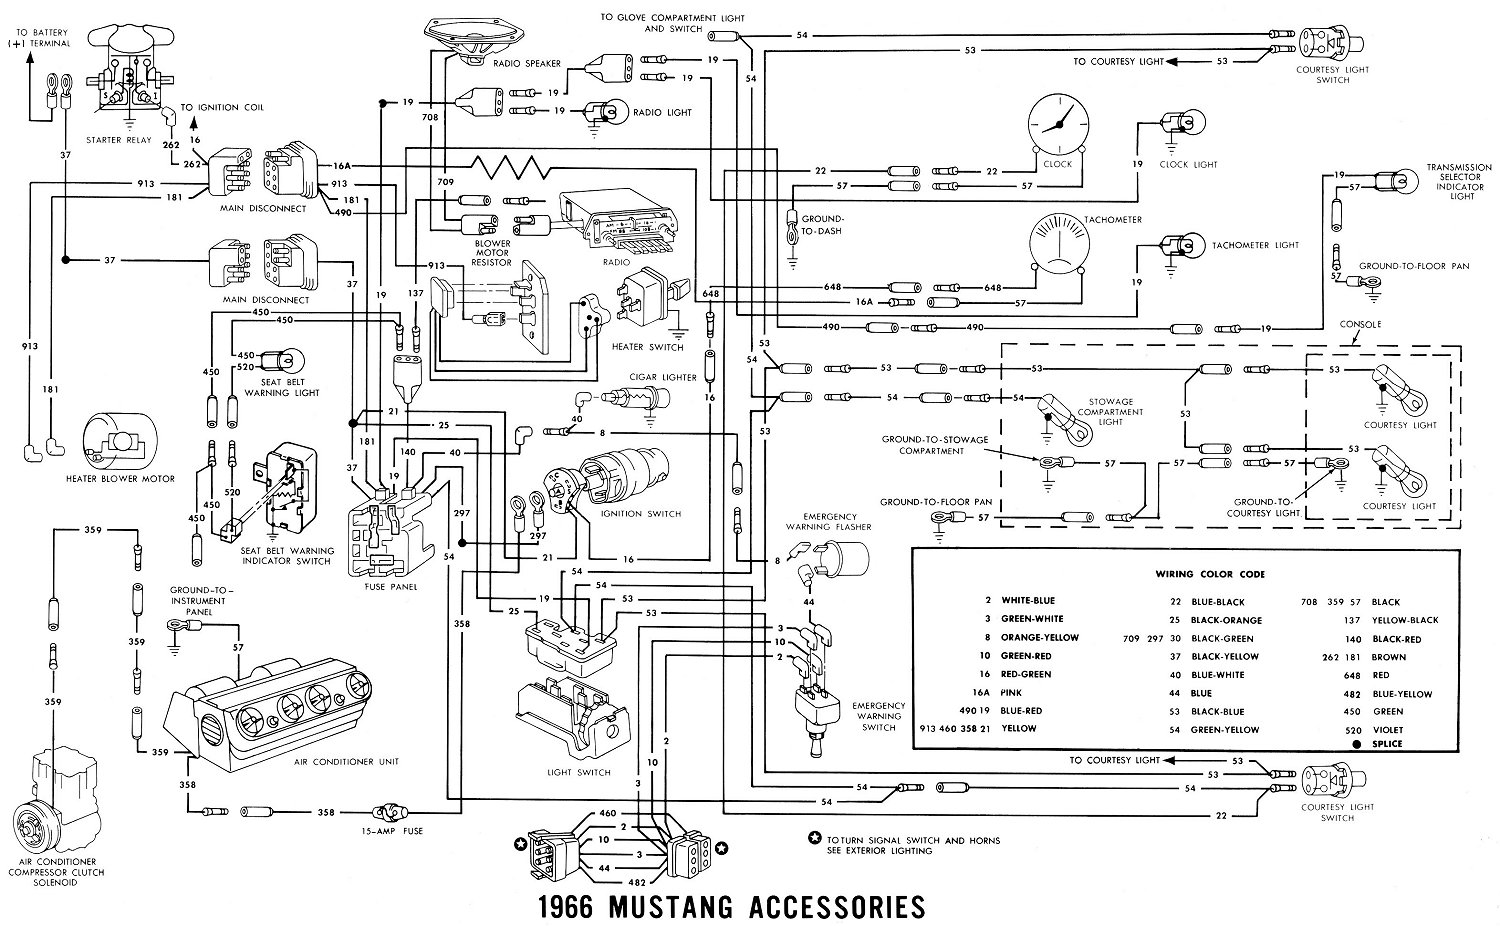 66acces1 1966 mustang wiring diagrams average joe restoration 1966 mustang heater wiring diagram at bayanpartner.co